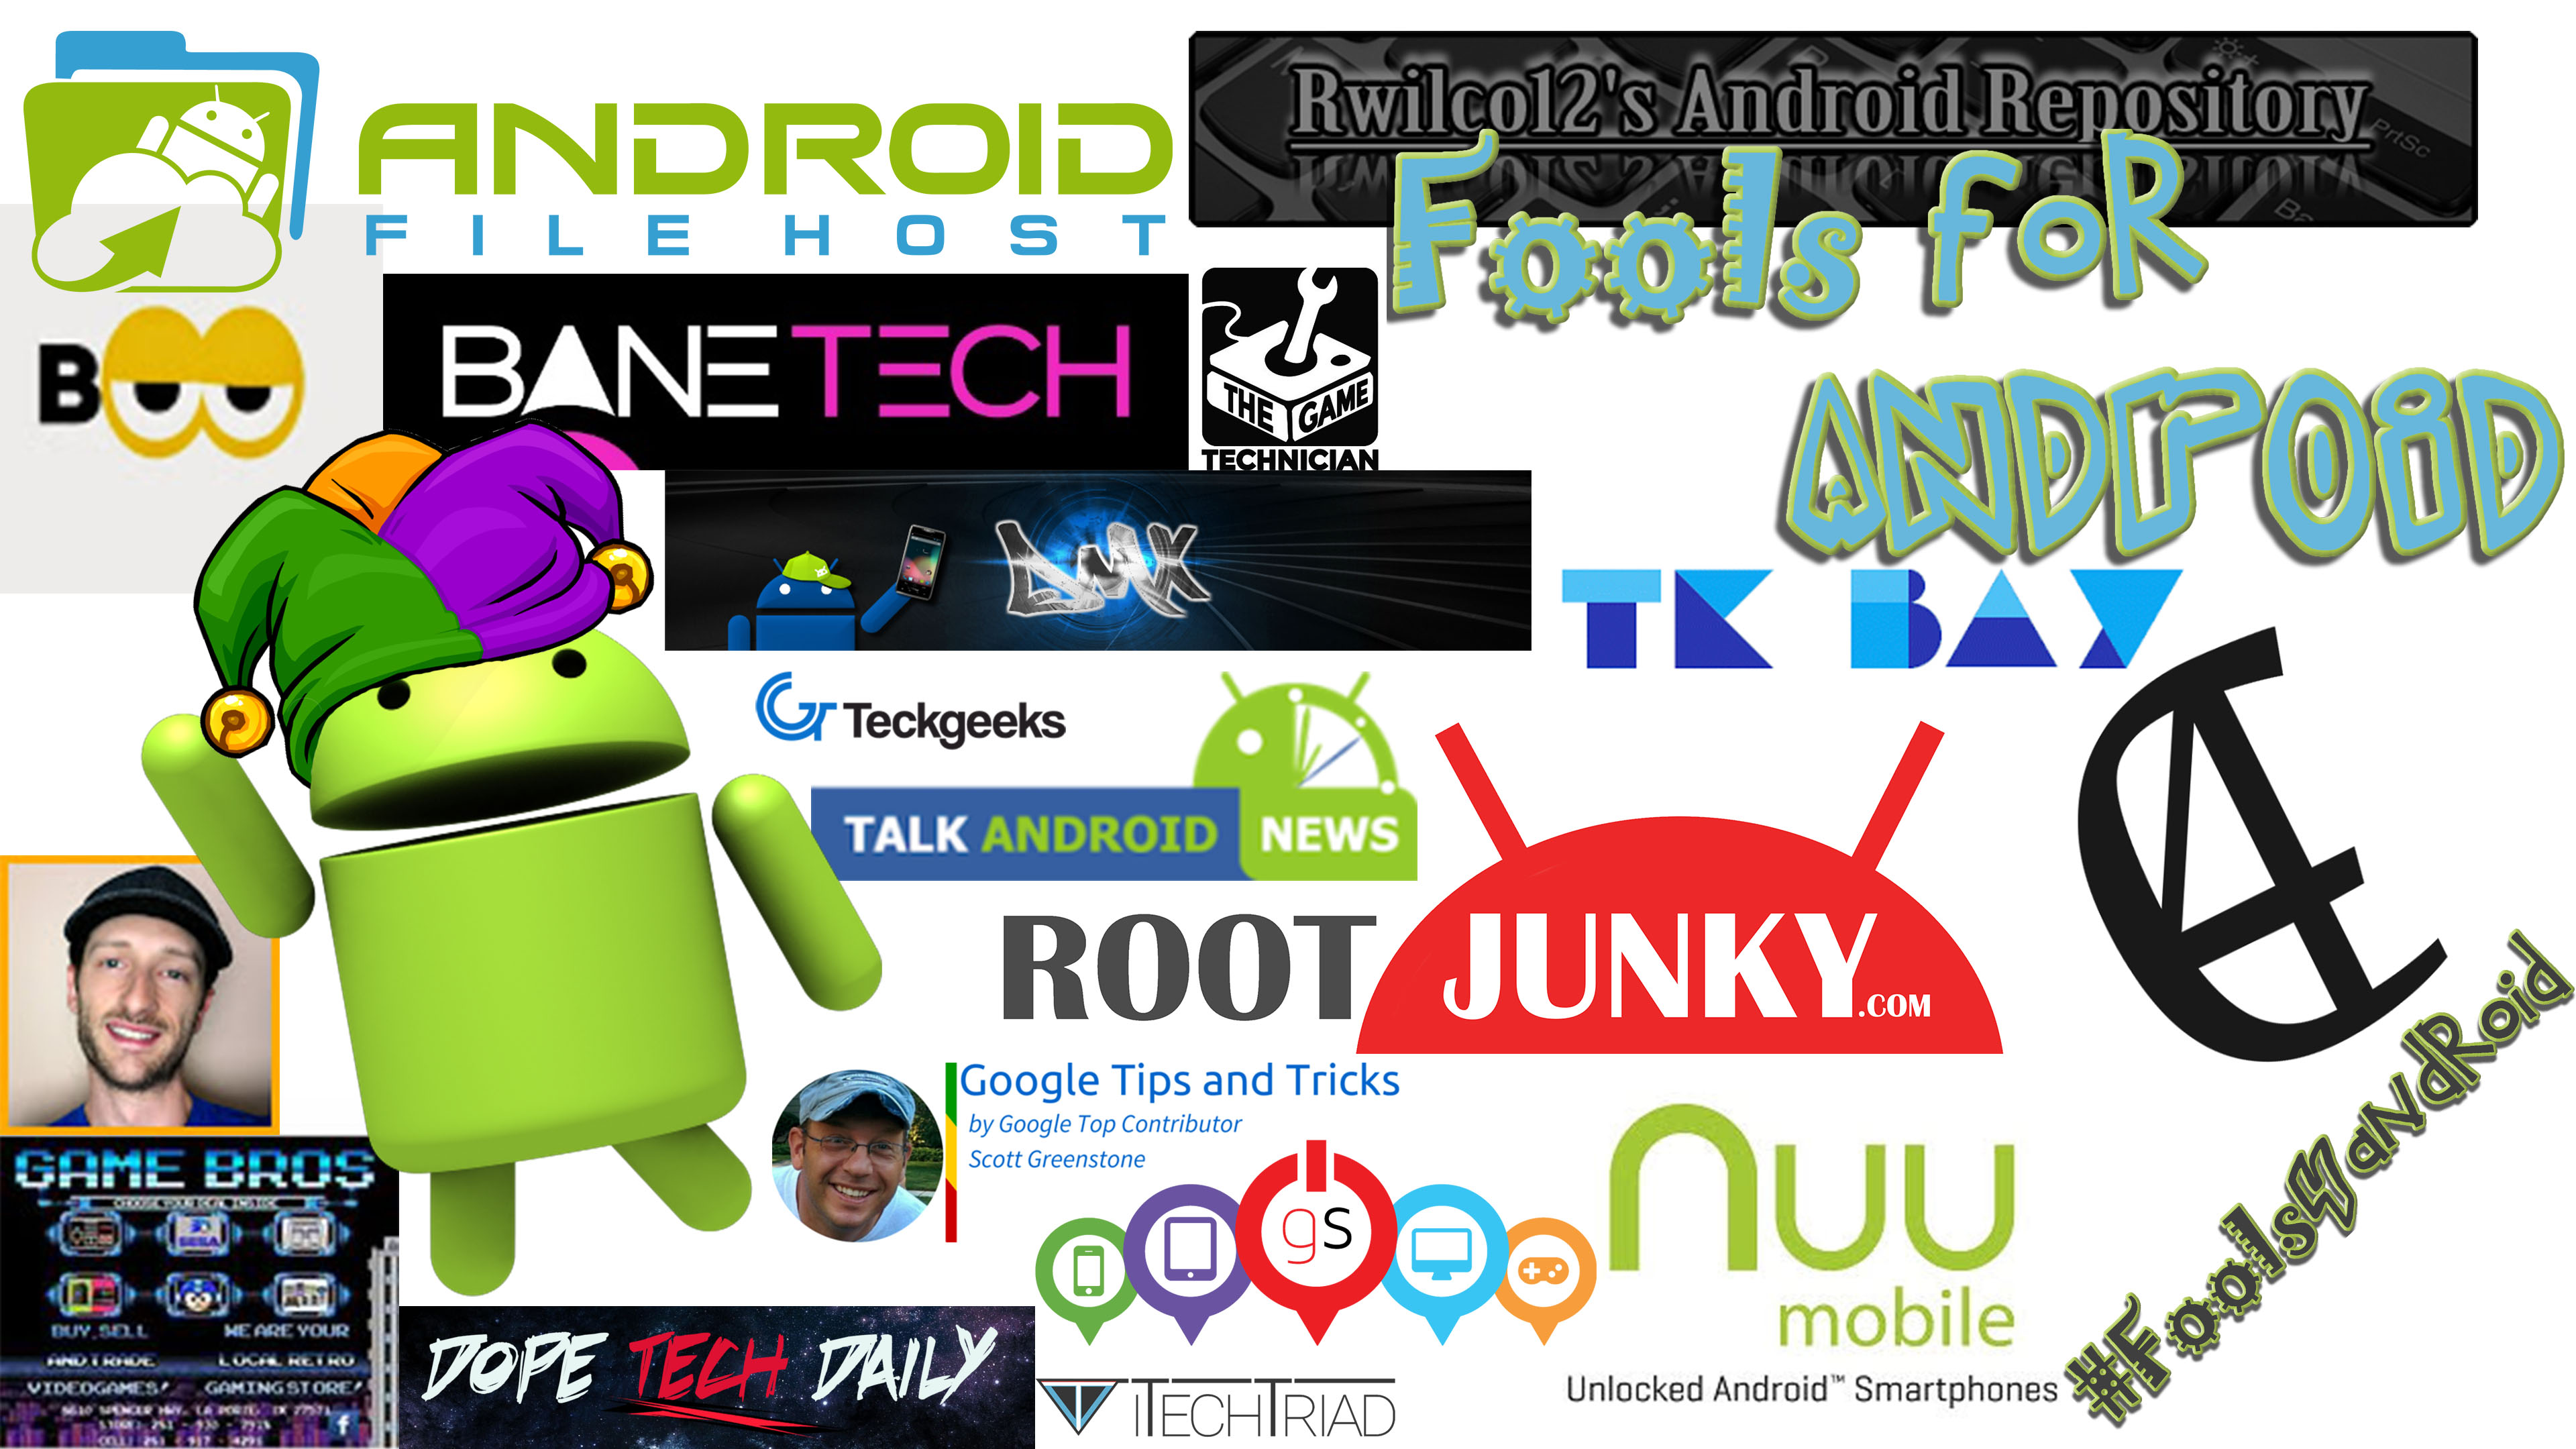 #Fools4Android Giveaway!